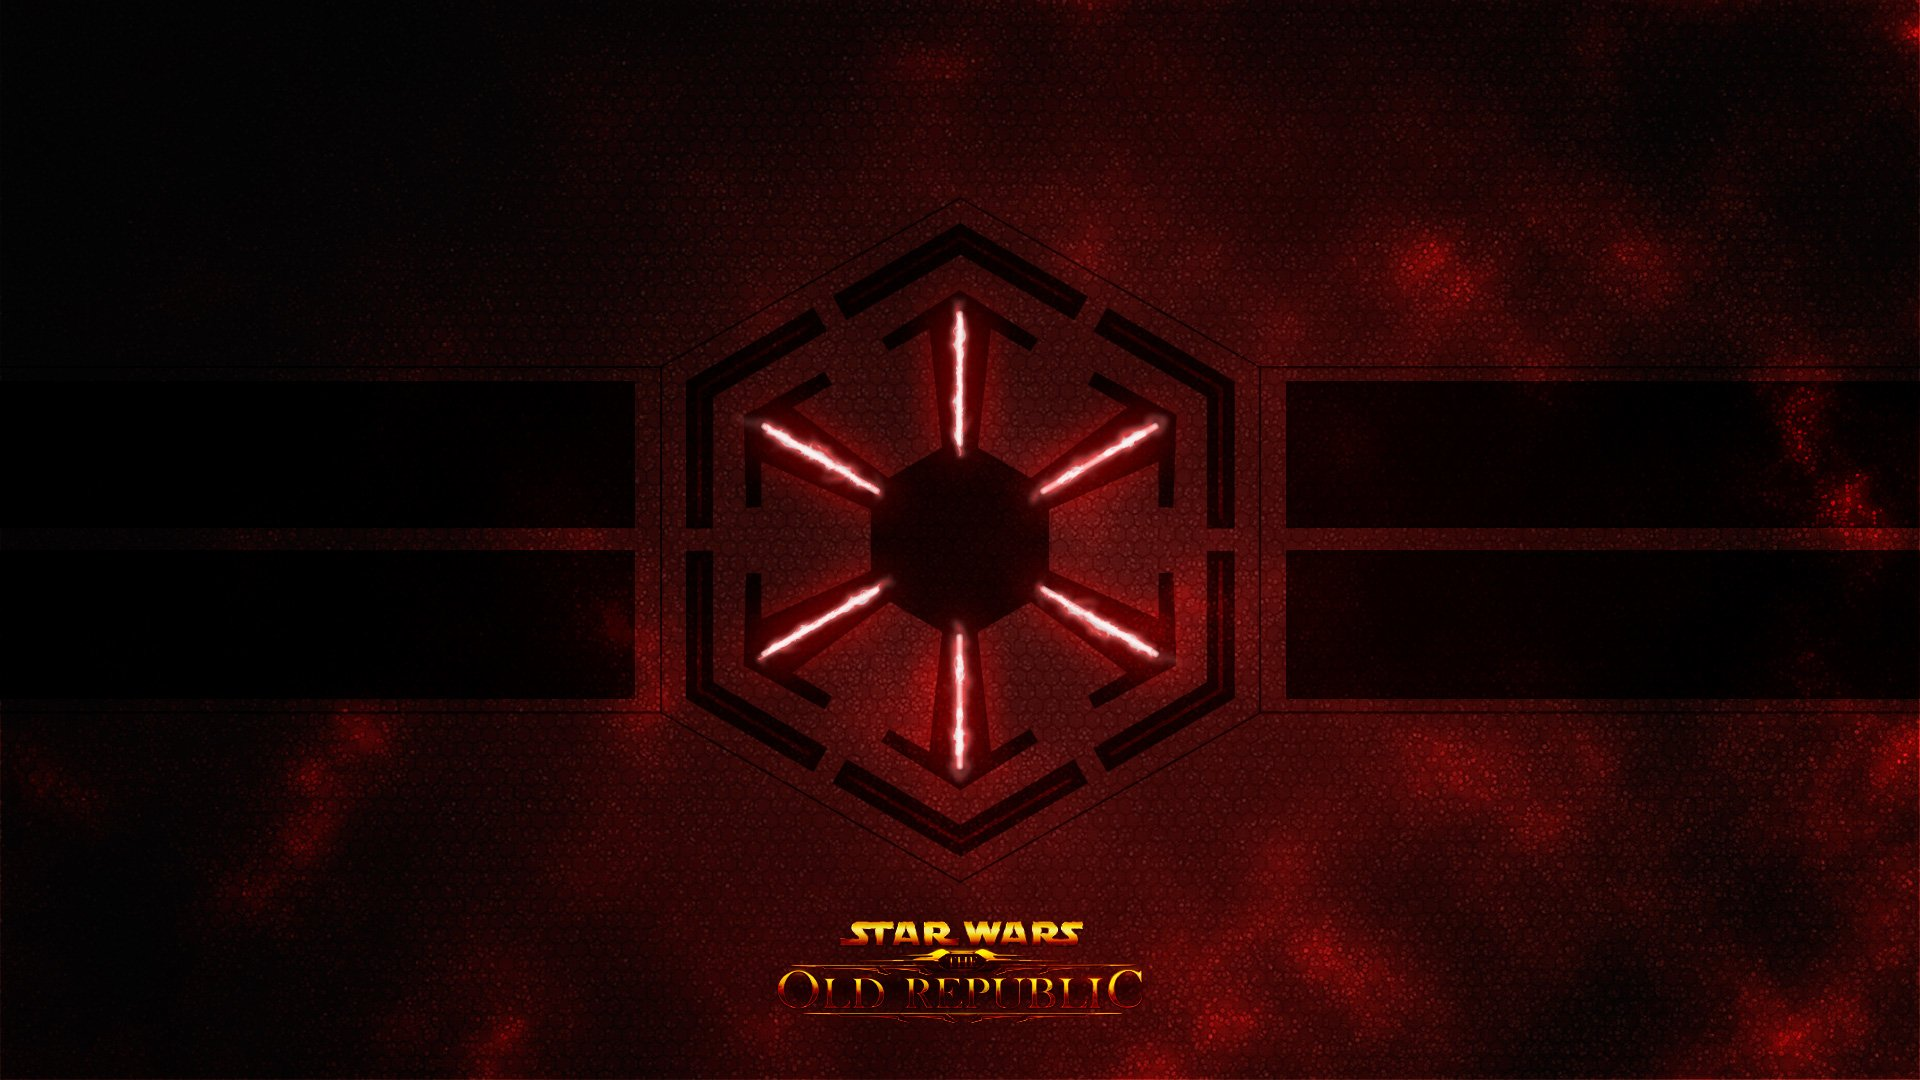 54 Star Wars The Old Republic HD Wallpapers